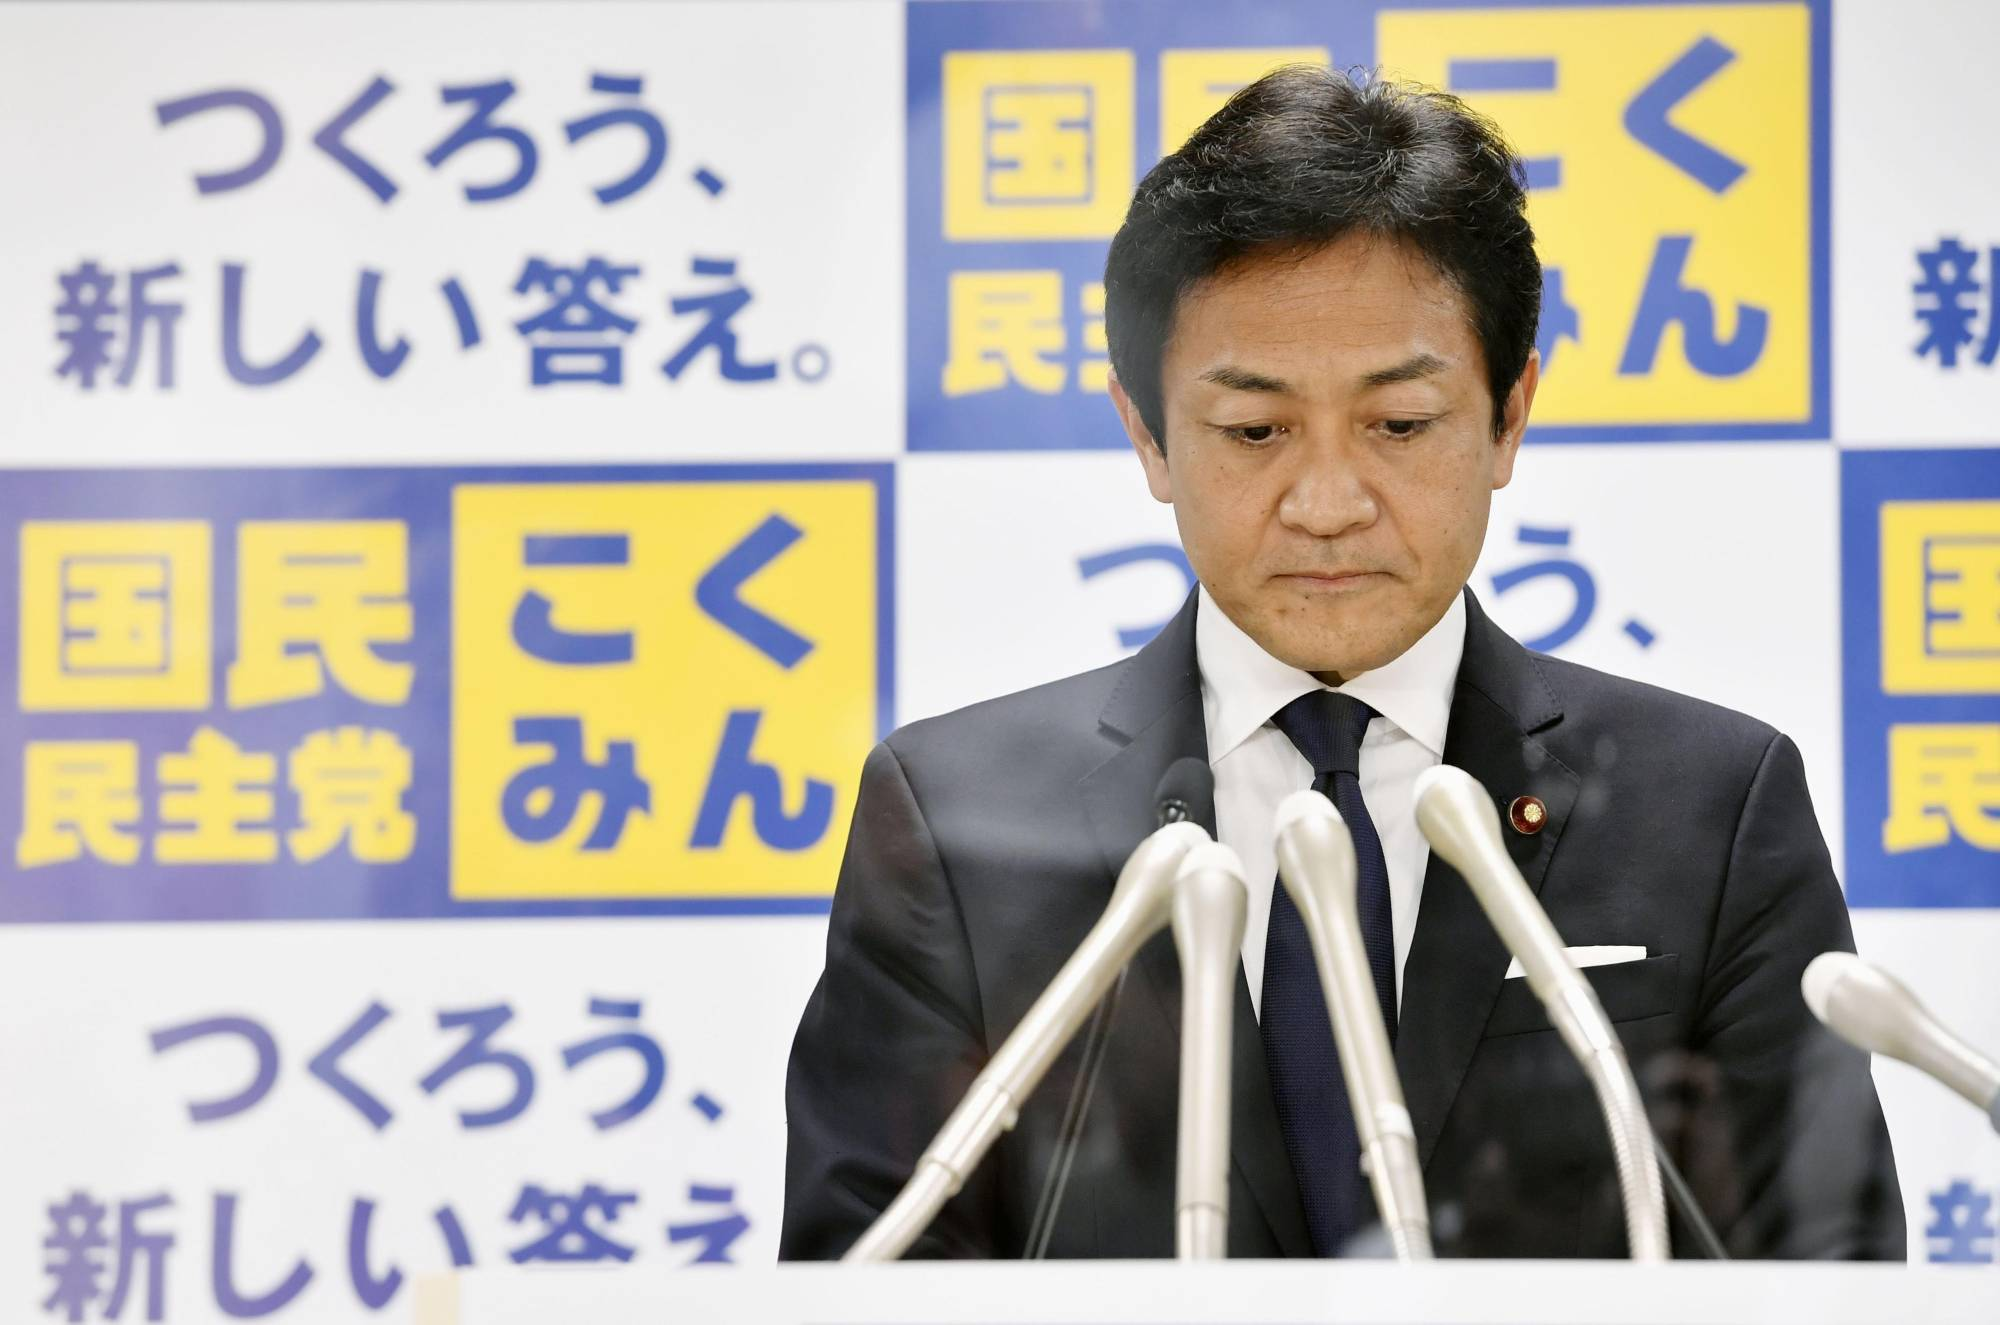 Yuichiro Tamaki, head of the Democratic Party for the People, said he would not be among the members going forward with a merger with the Constitutional Democratic Party of Japan. | KYODO